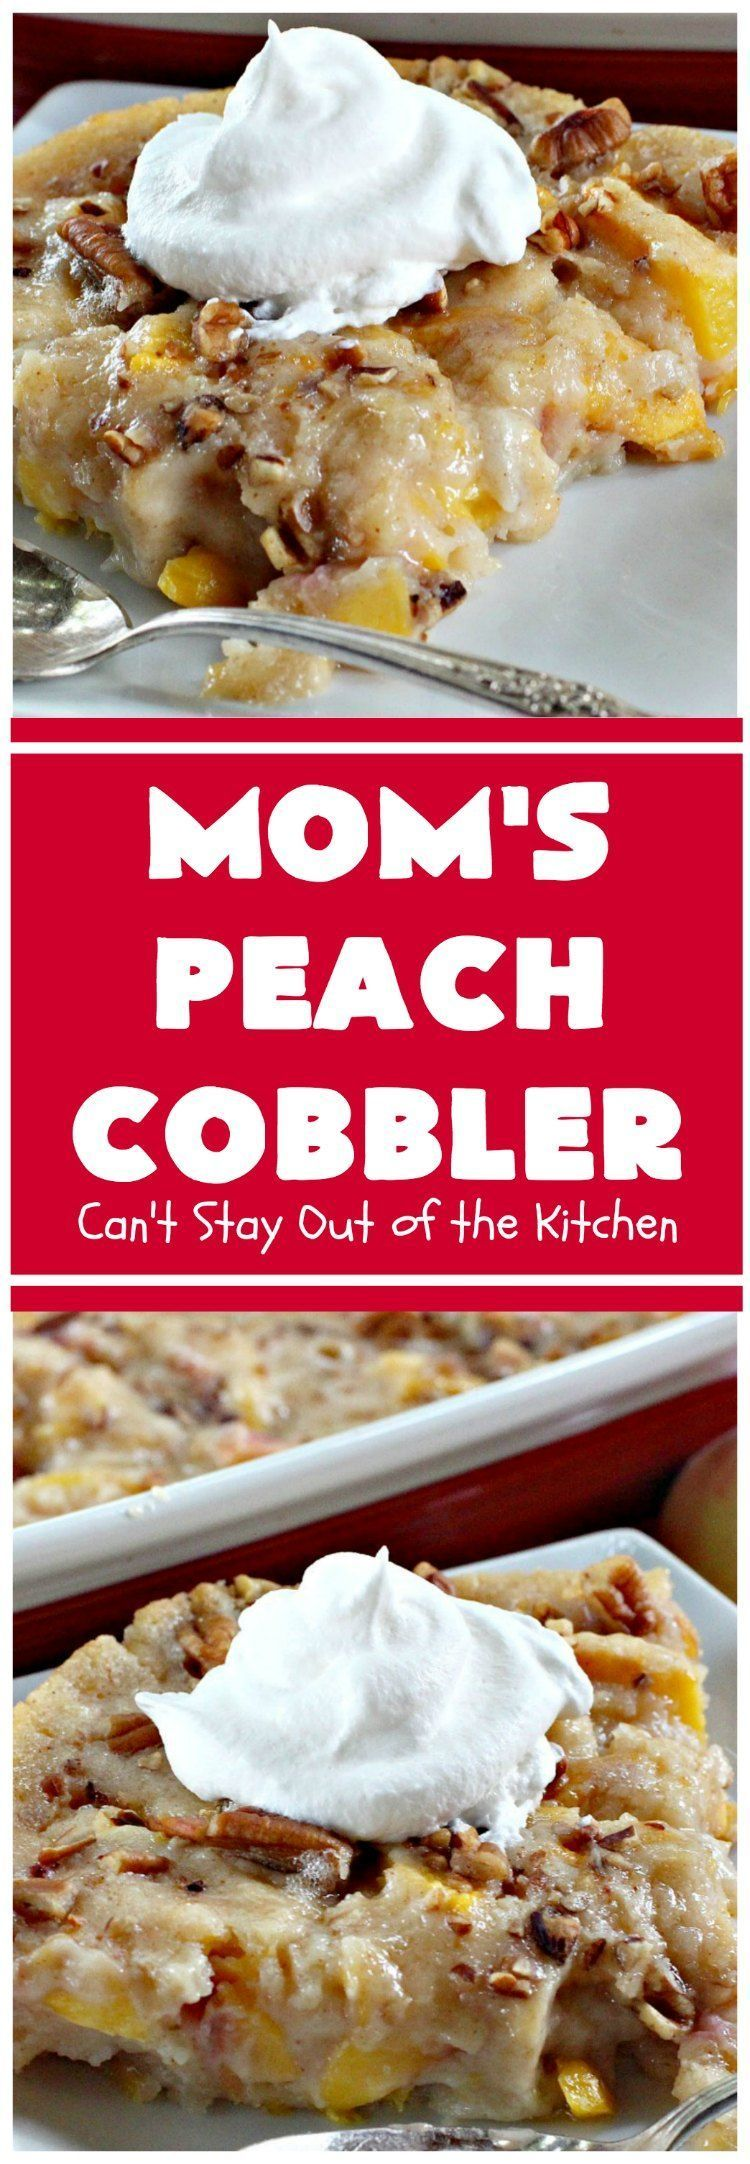 Photo of Mom's Peach Cobbl… #cobbler #cream Soup Appetizers #dinner…